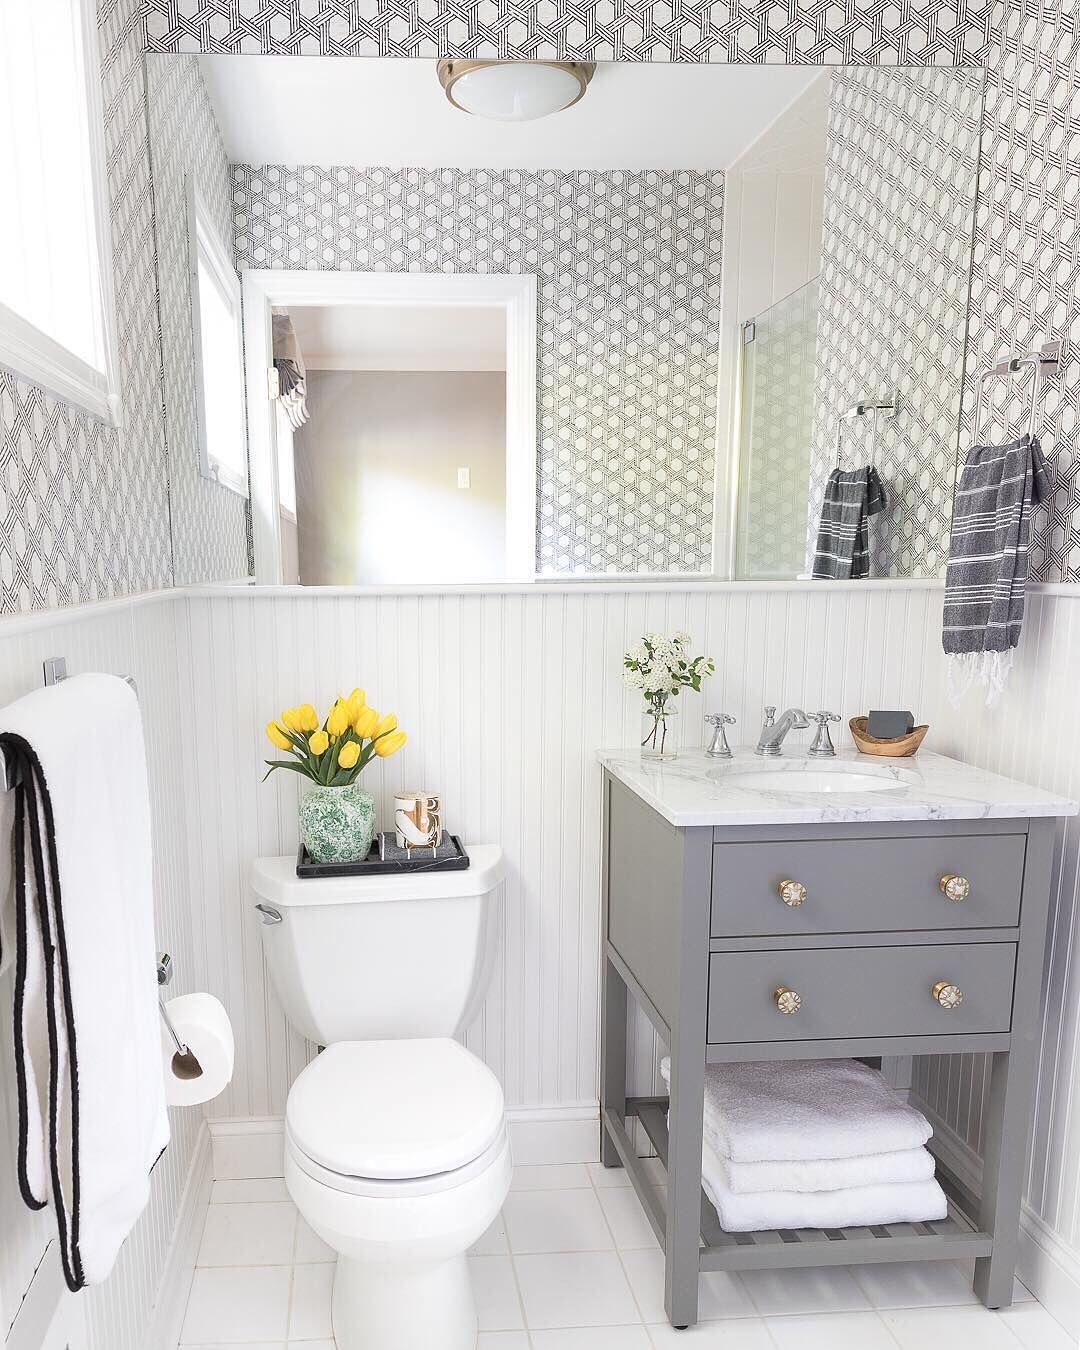 A Simple Yet Elegant Powder Room Lovely Home Drivenbydecor